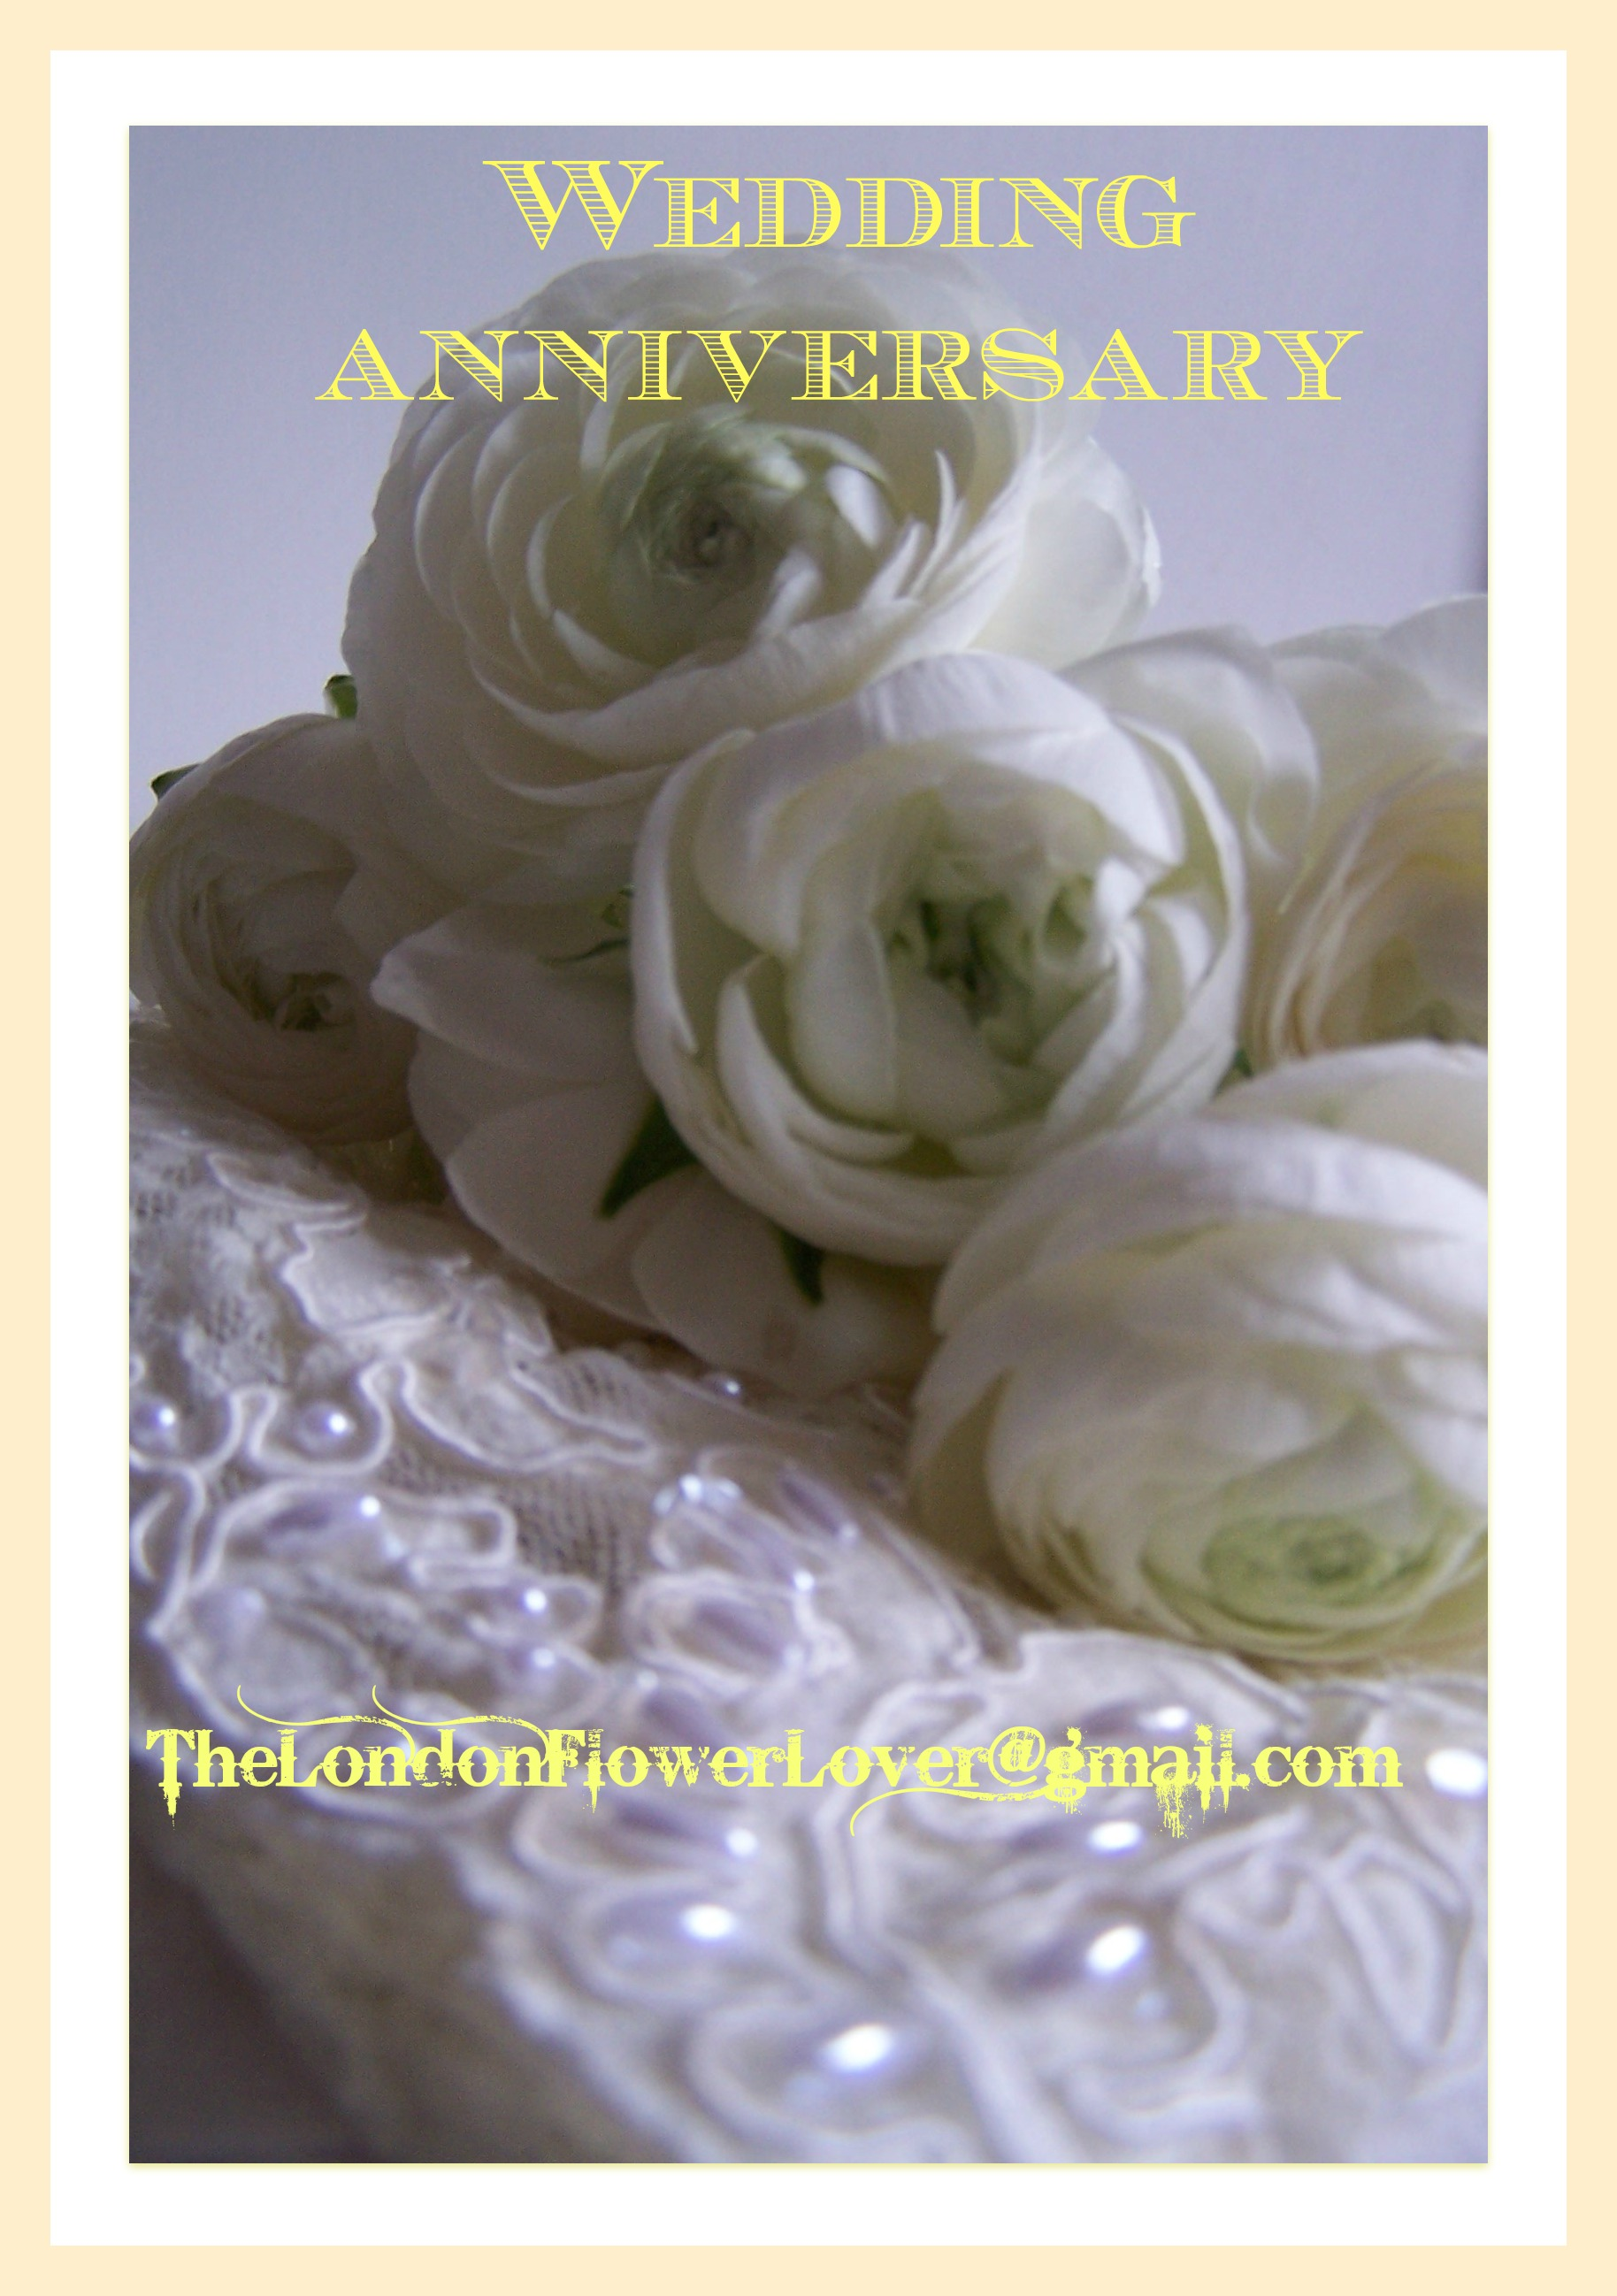 wedding anniversary flowers the london flower lover. Black Bedroom Furniture Sets. Home Design Ideas